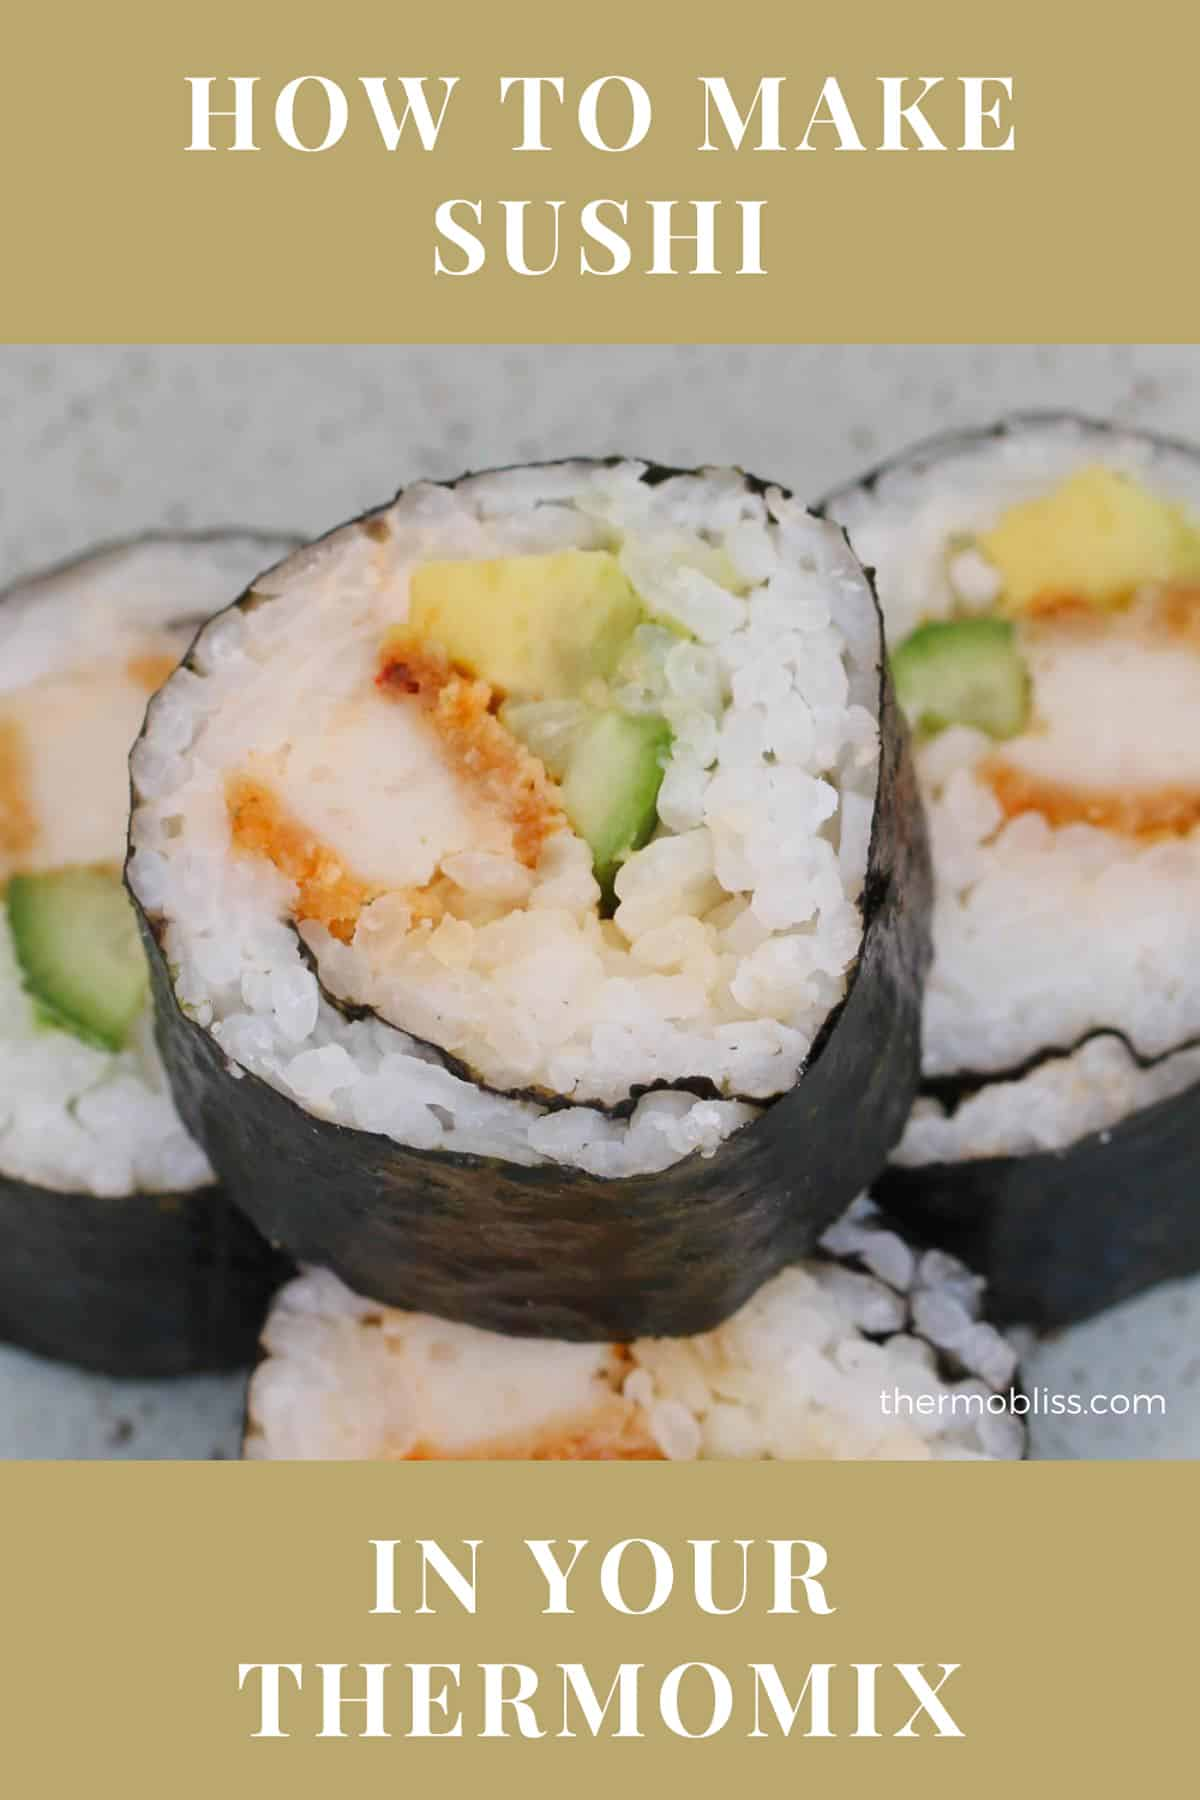 Pieces of sushi made in a Thermomix.